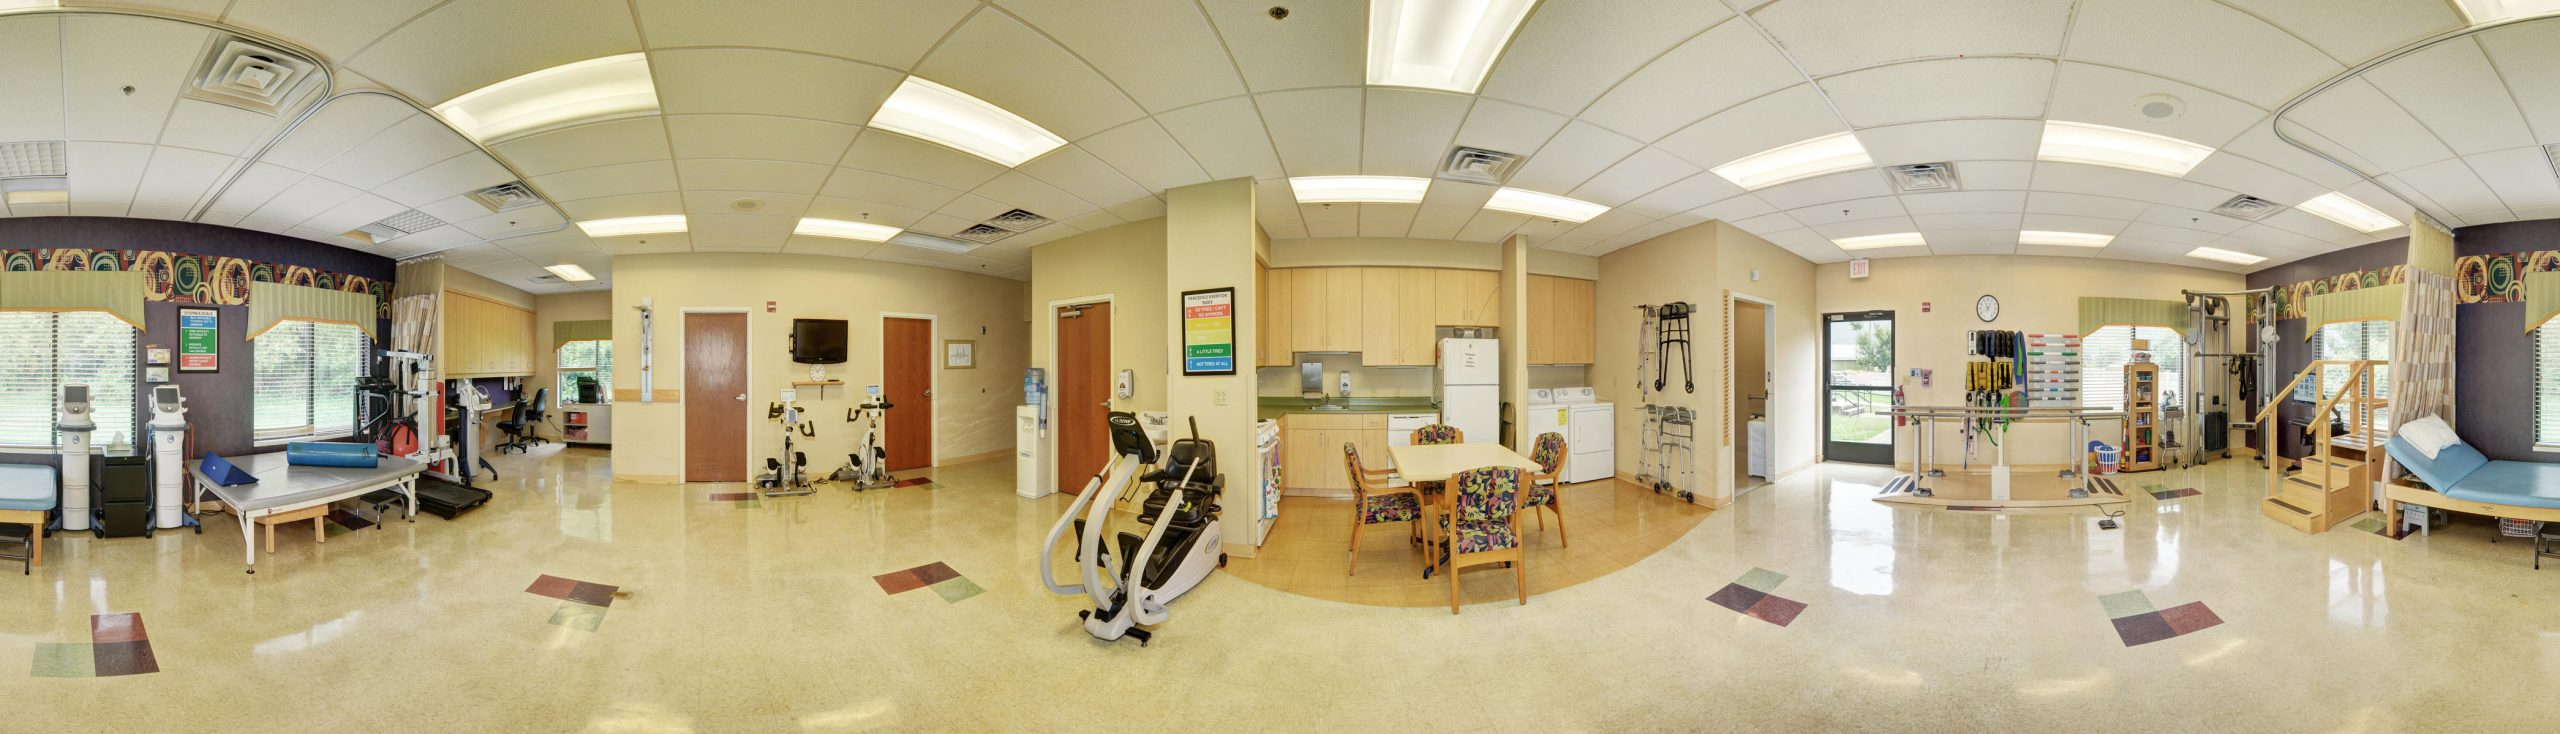 Panoramic view of Stonerise Keyser Therapy and Rehabilitation area